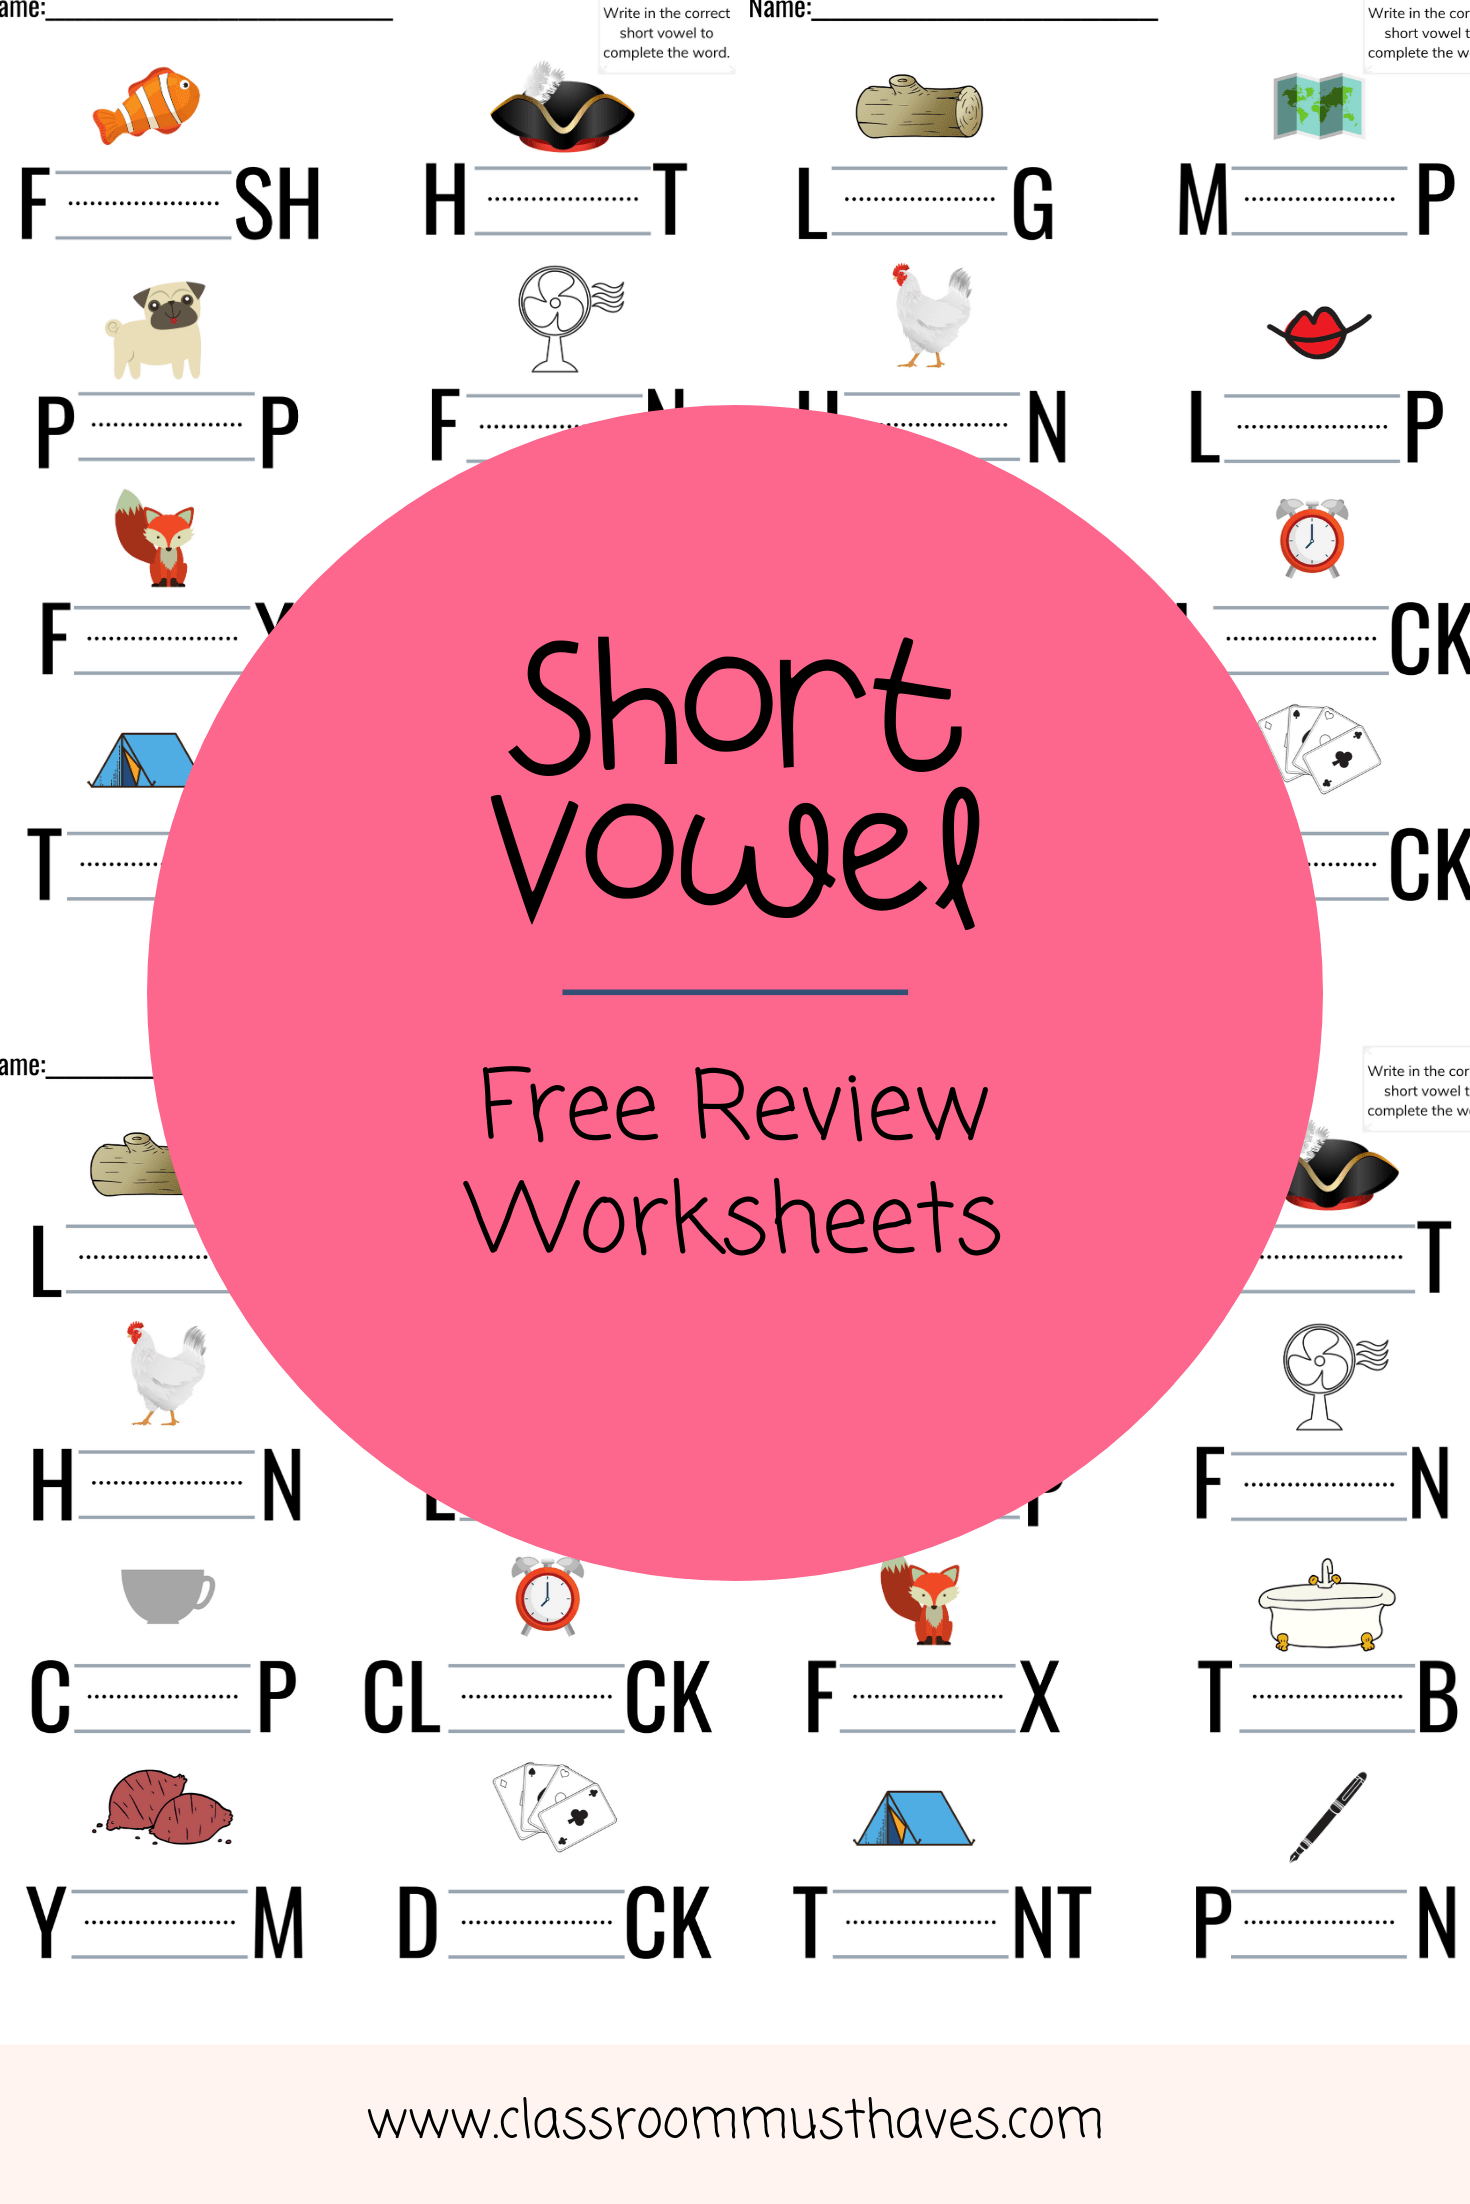 Free Short Vowel Review Worksheets